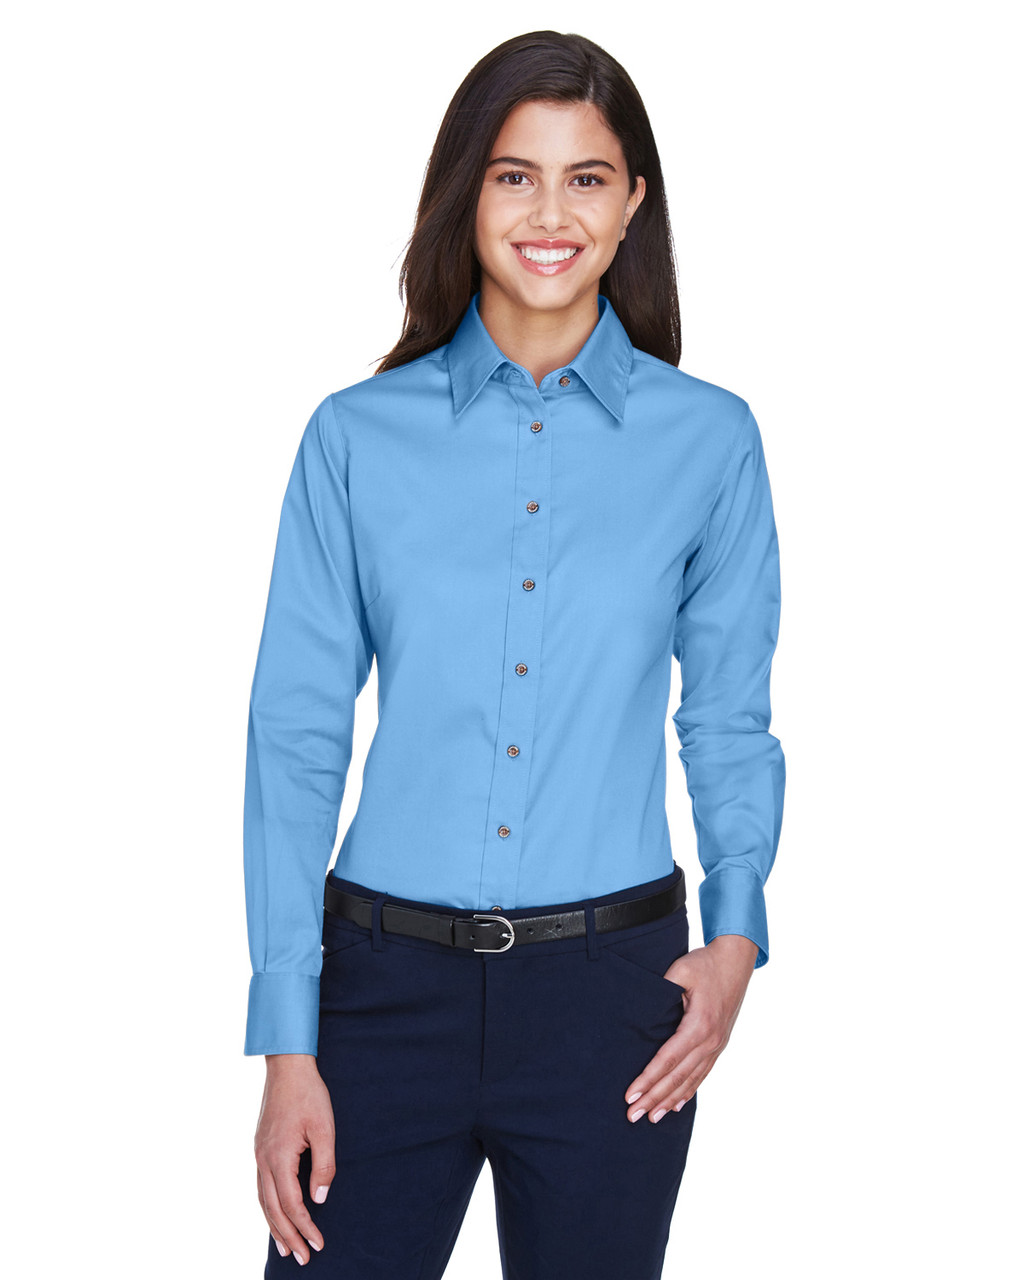 Light College Blue - M500W Harriton Easy Blend Long-Sleeve Twill Shirt with Stain-Release | BlankClothing.ca